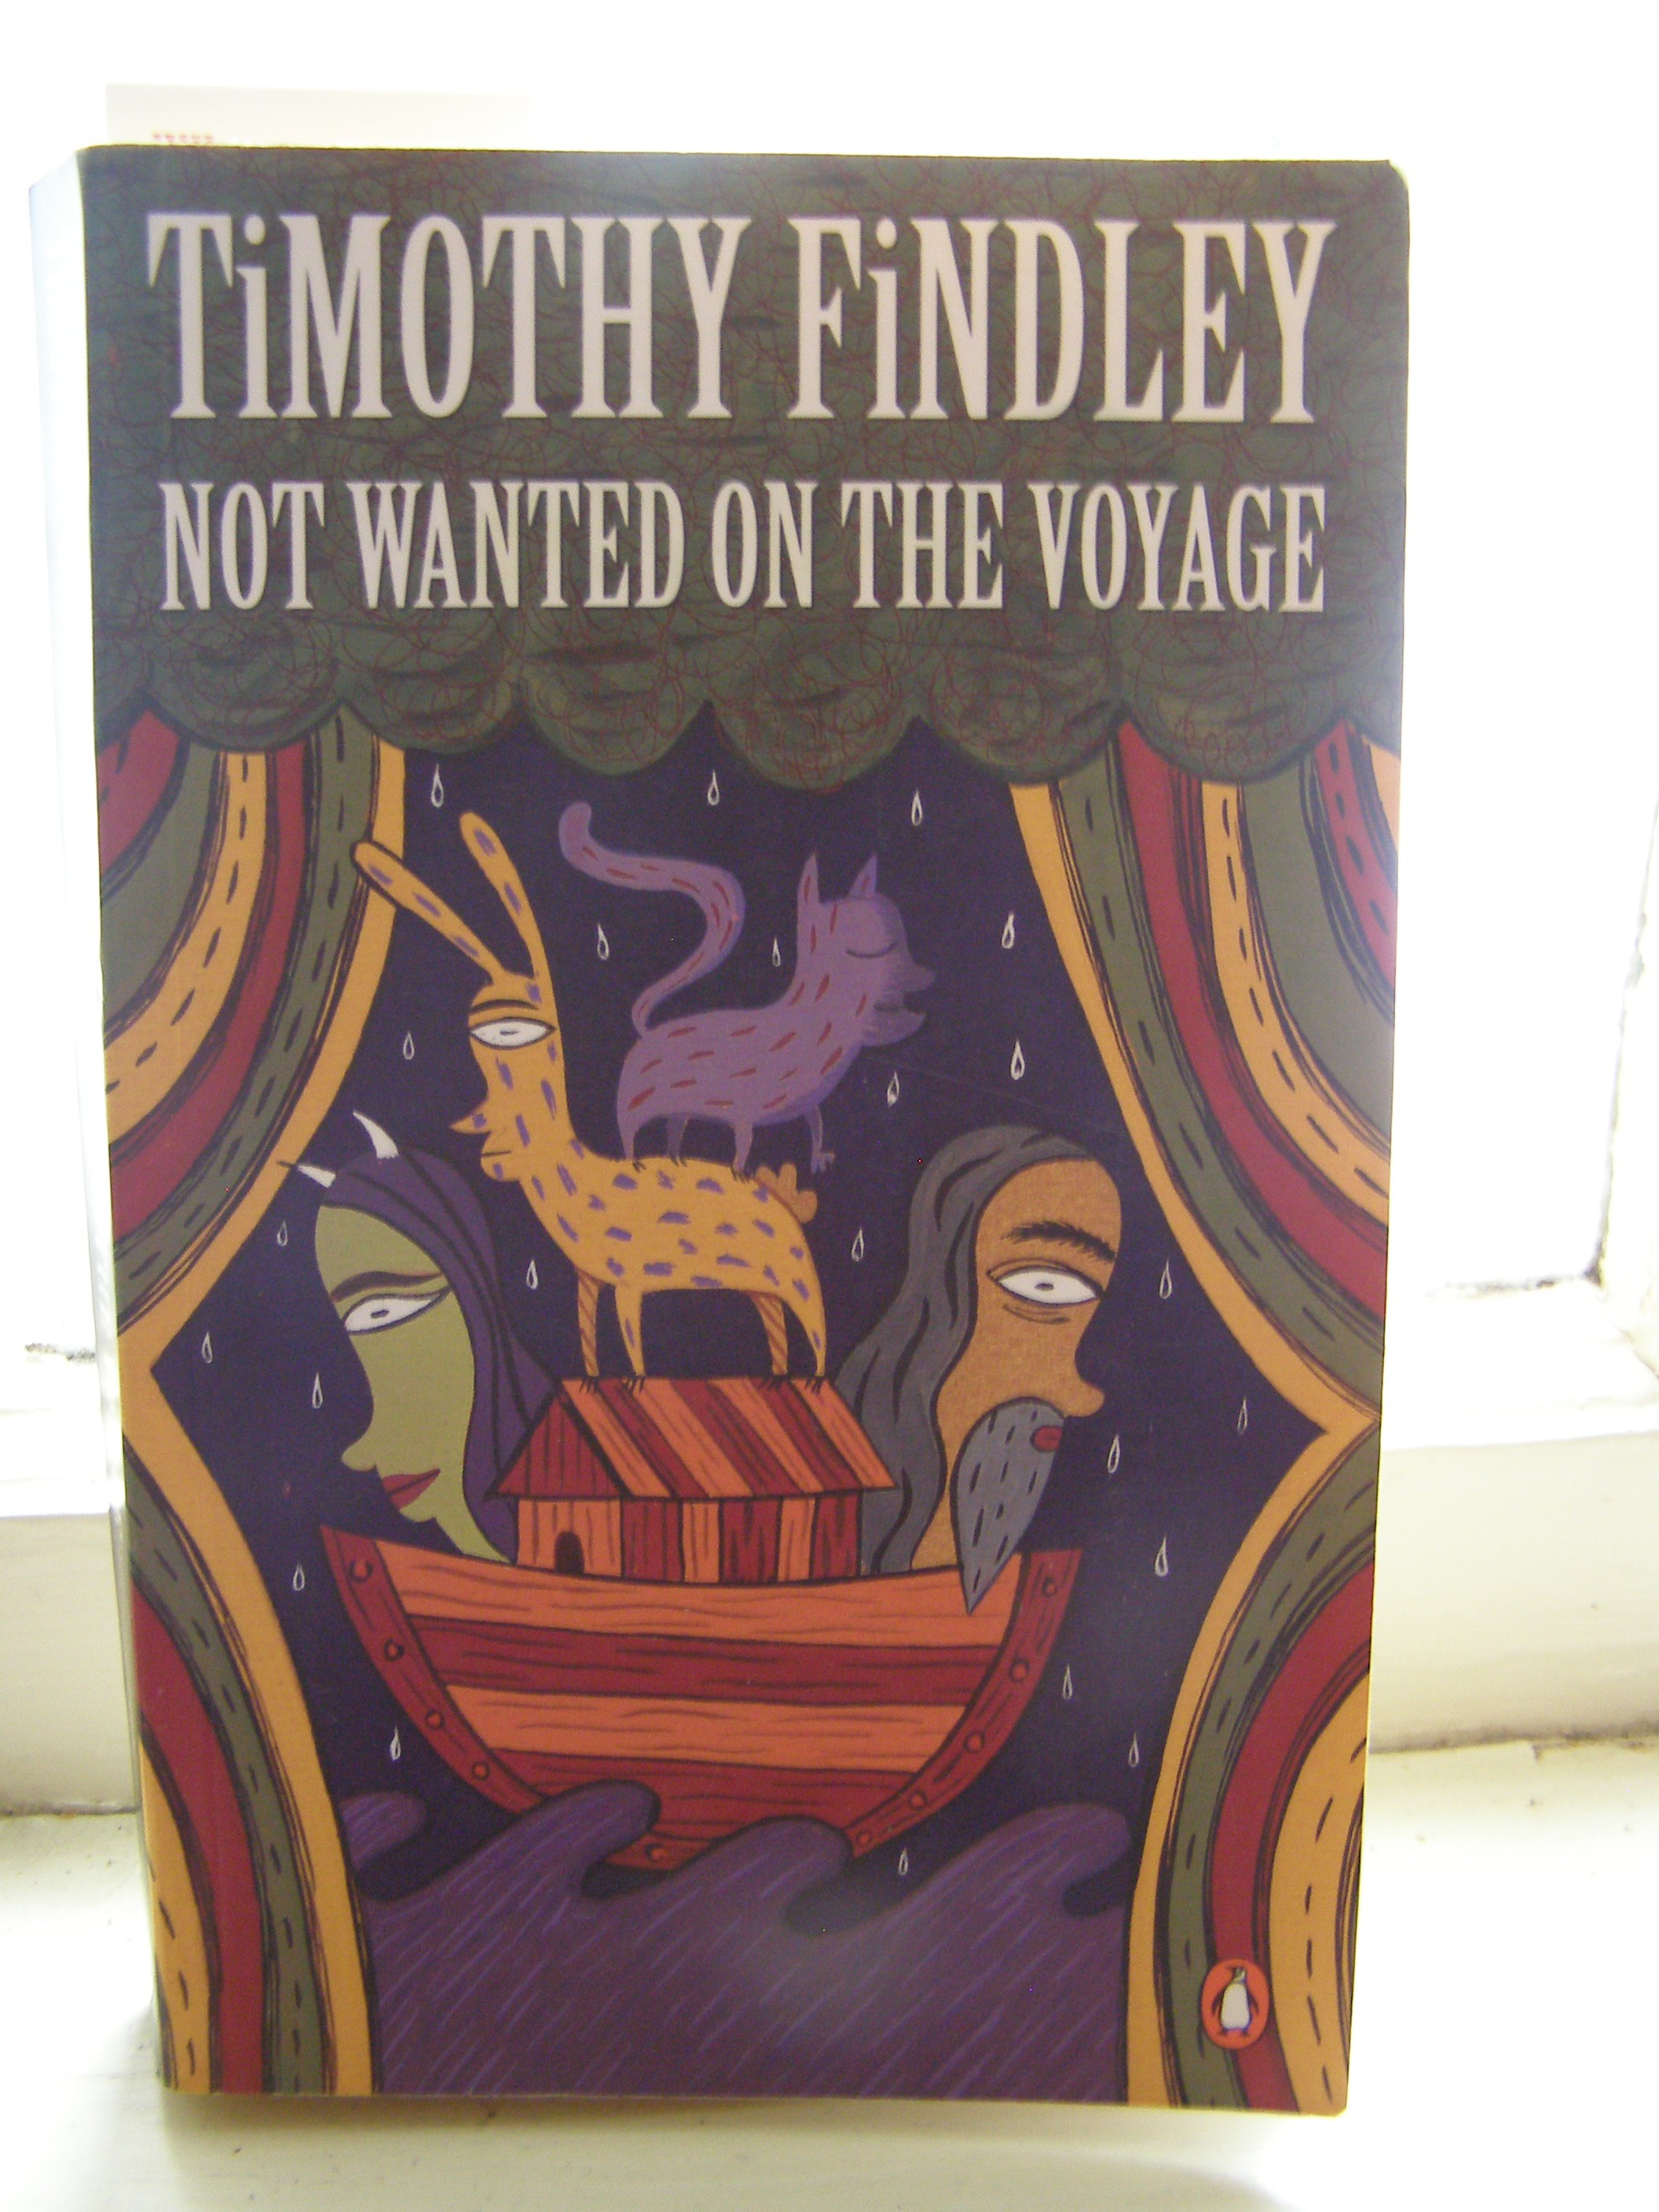 Timothy findleys novel not wanted on the voyage essay